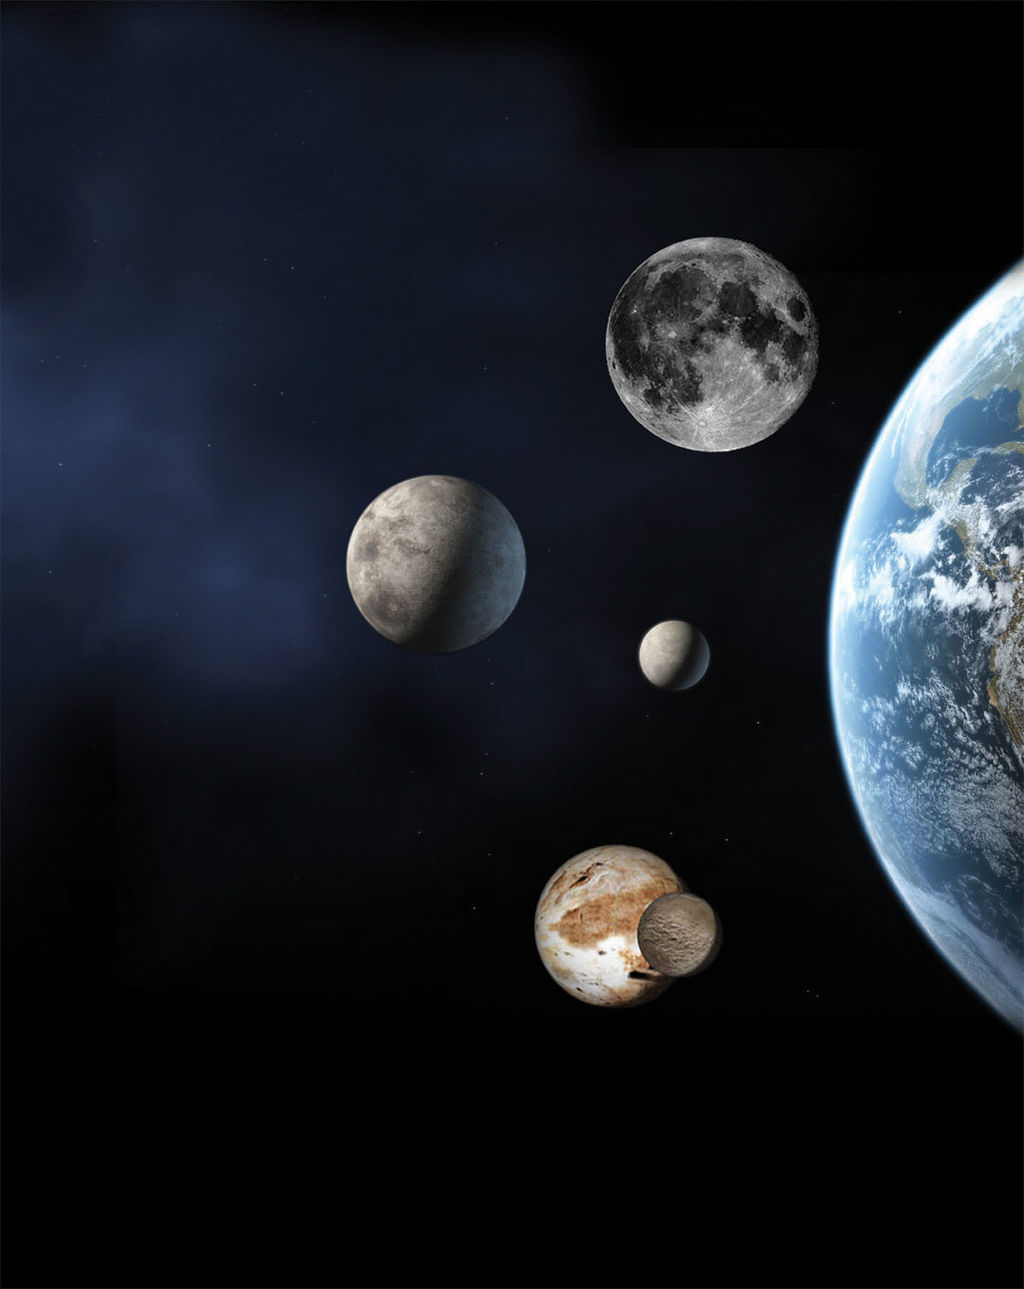 An artist's concept showing the size of the best known dwarf planets compared to Earth and its moon (top). Eris is left center; Ceres is the small body to its right and Pluto and its moon Charon are at the bottom.